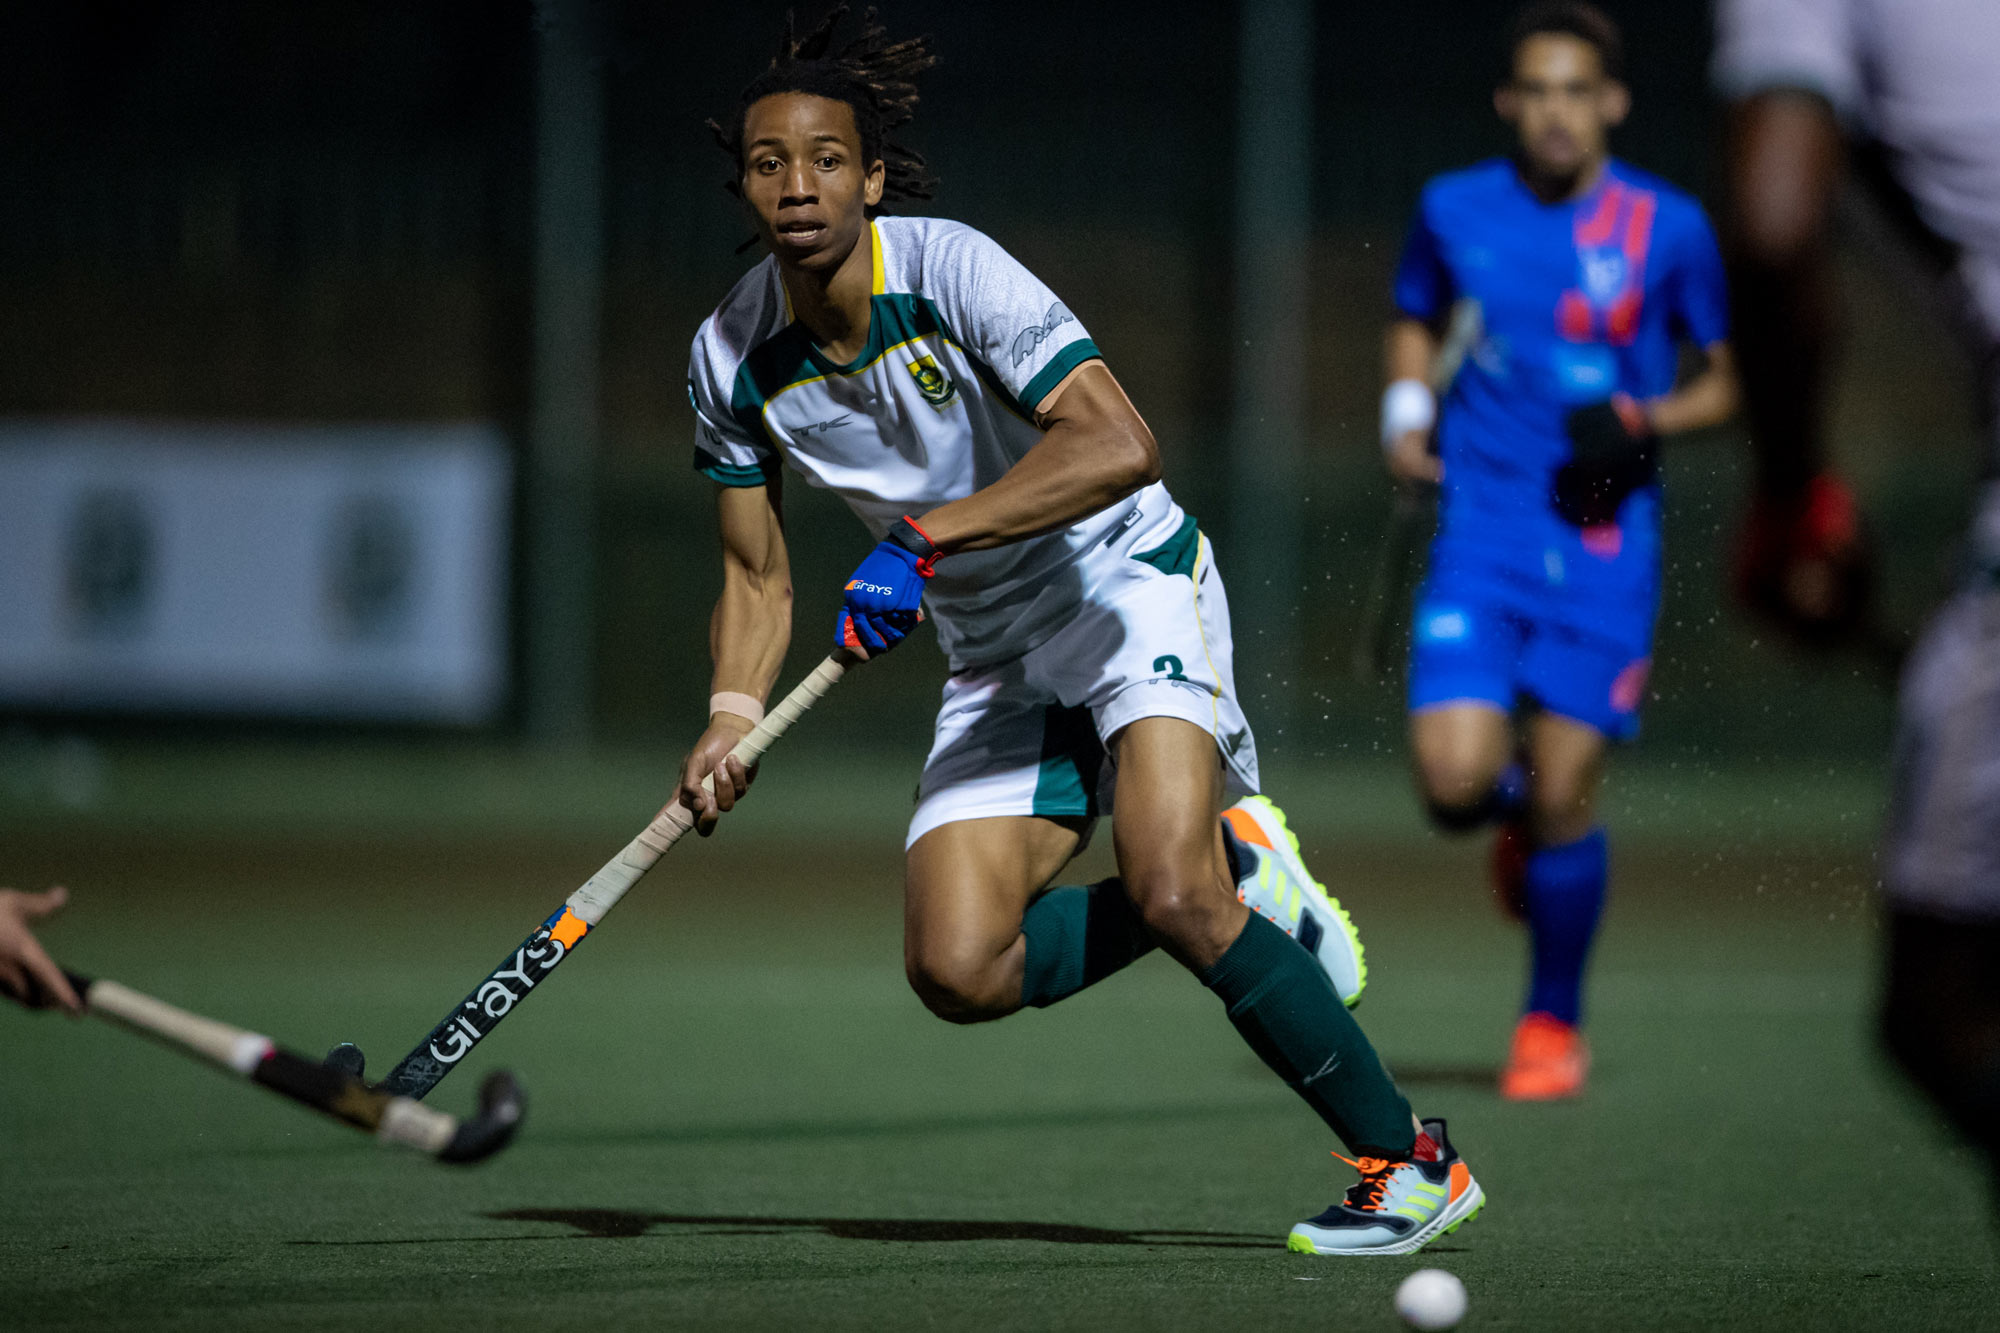 4 May 2021: Tyson Dlungwana from South Africa during the third of a five-match series against Namibia at Northcliff High School in Johannesburg. (Photograph by Anton Geyser/ Gallo Images)